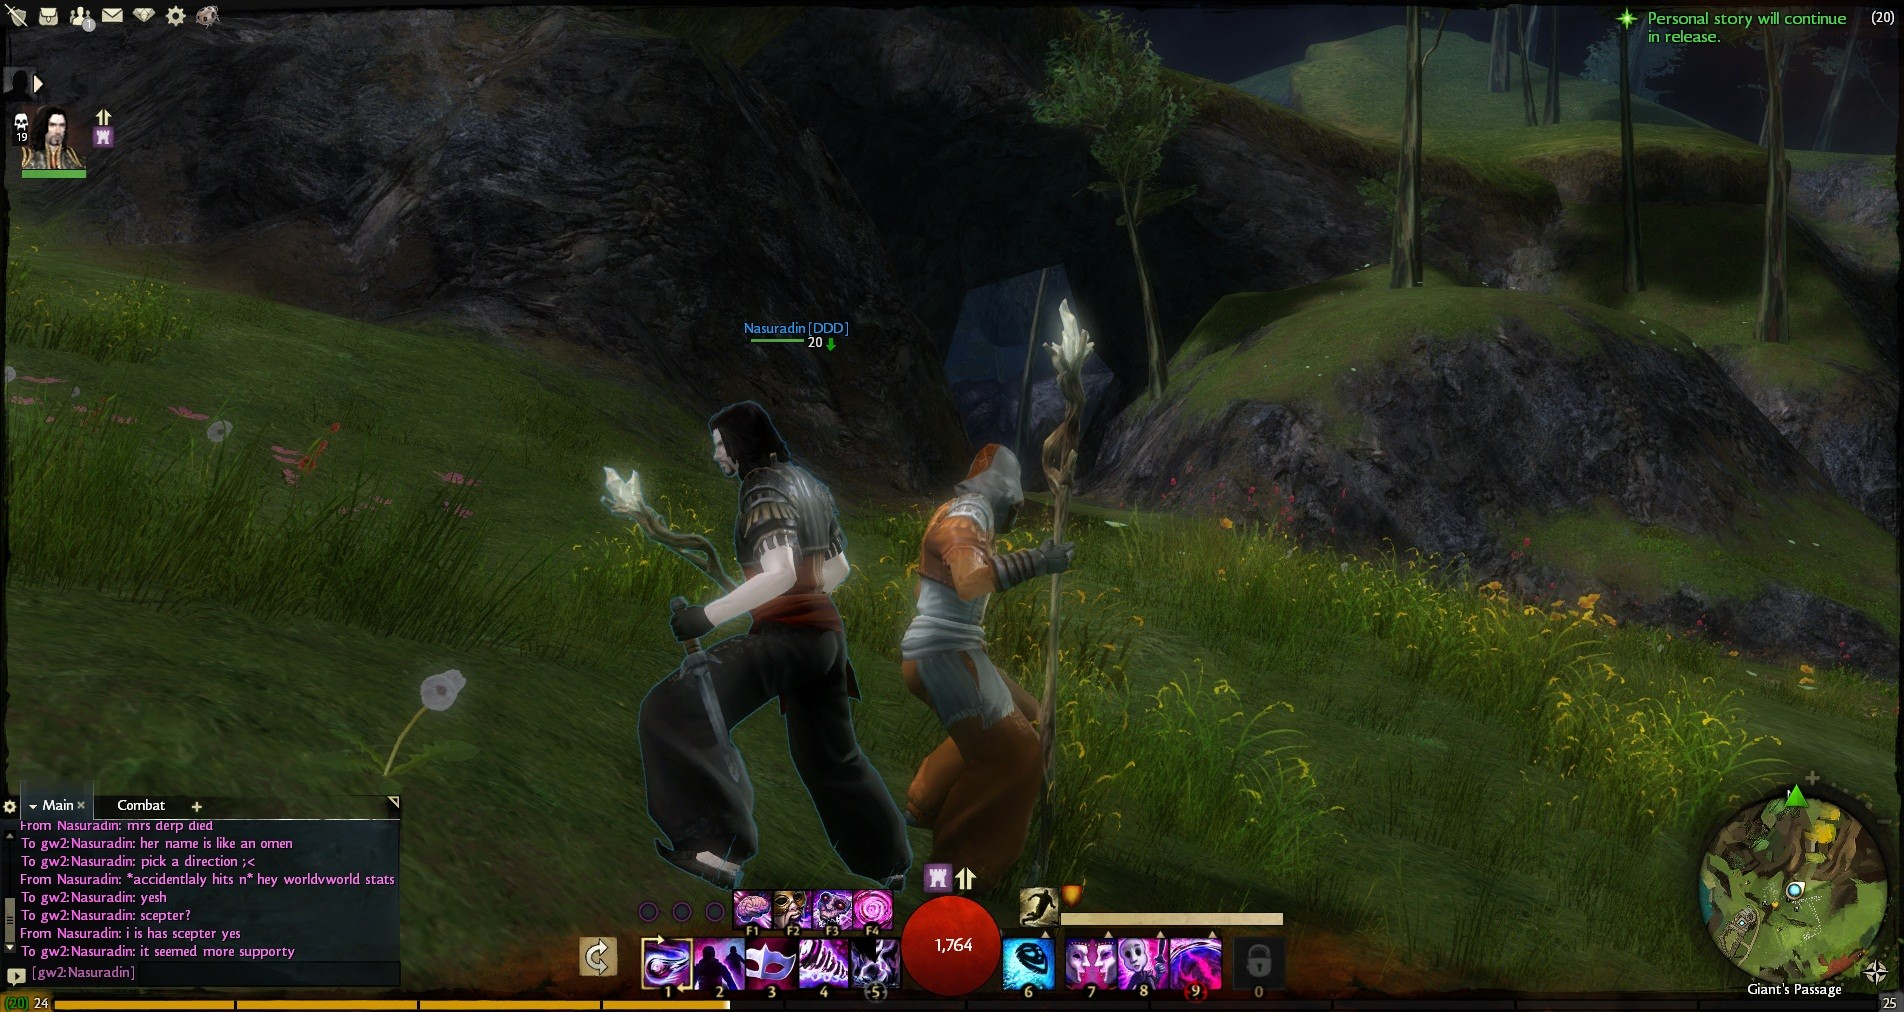 Guild Wars 2 - My necro friend and I. Ignore the chat.